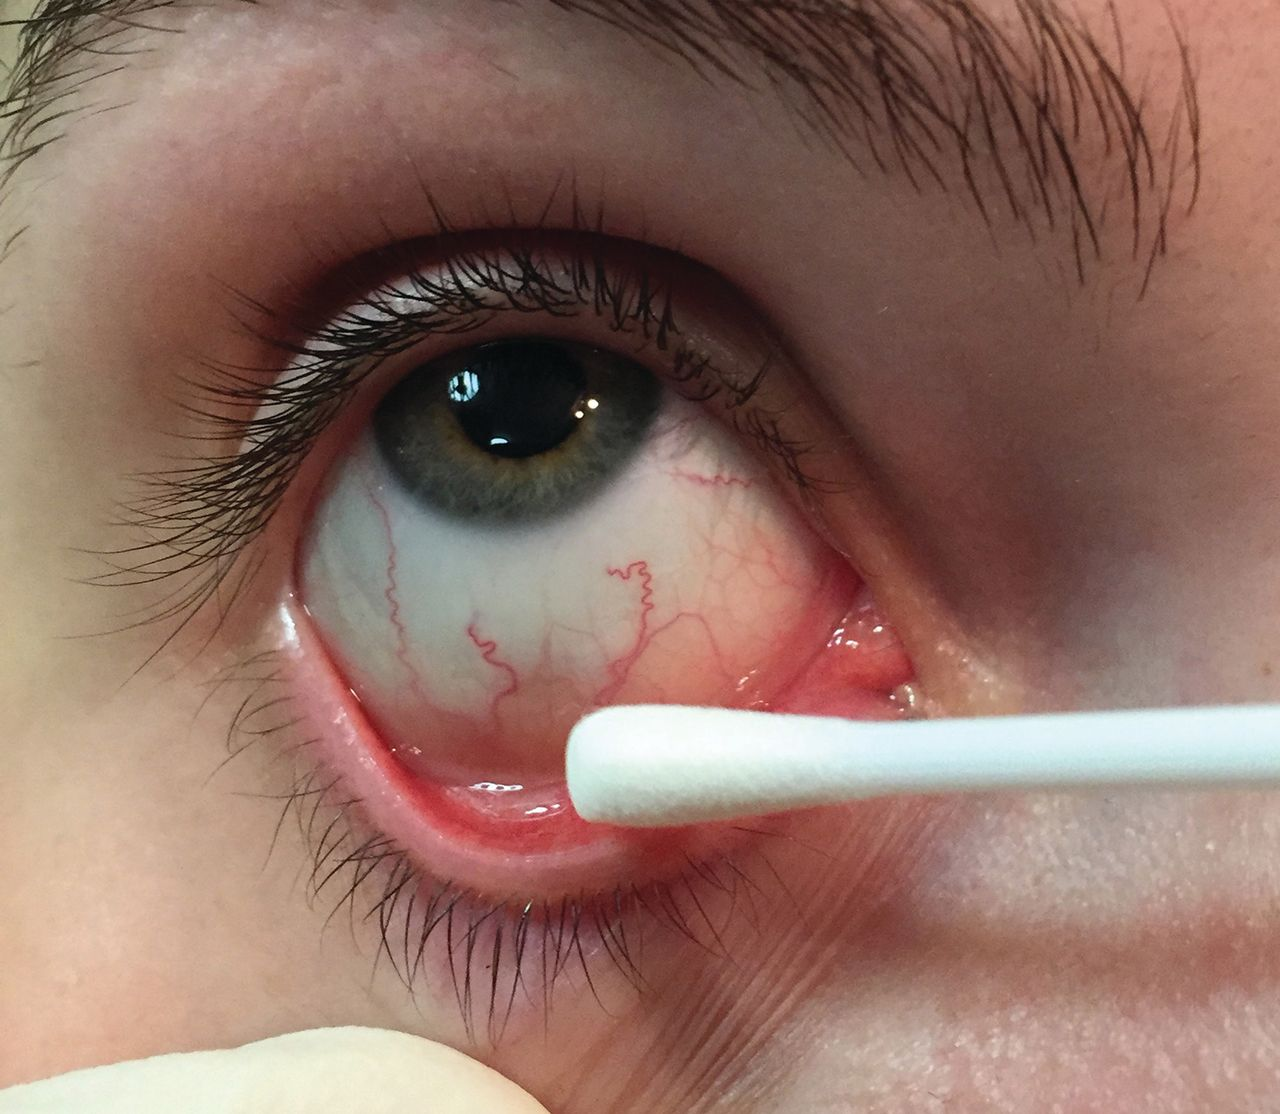 Gonococcal conjunctivitis: the importance of good-quality